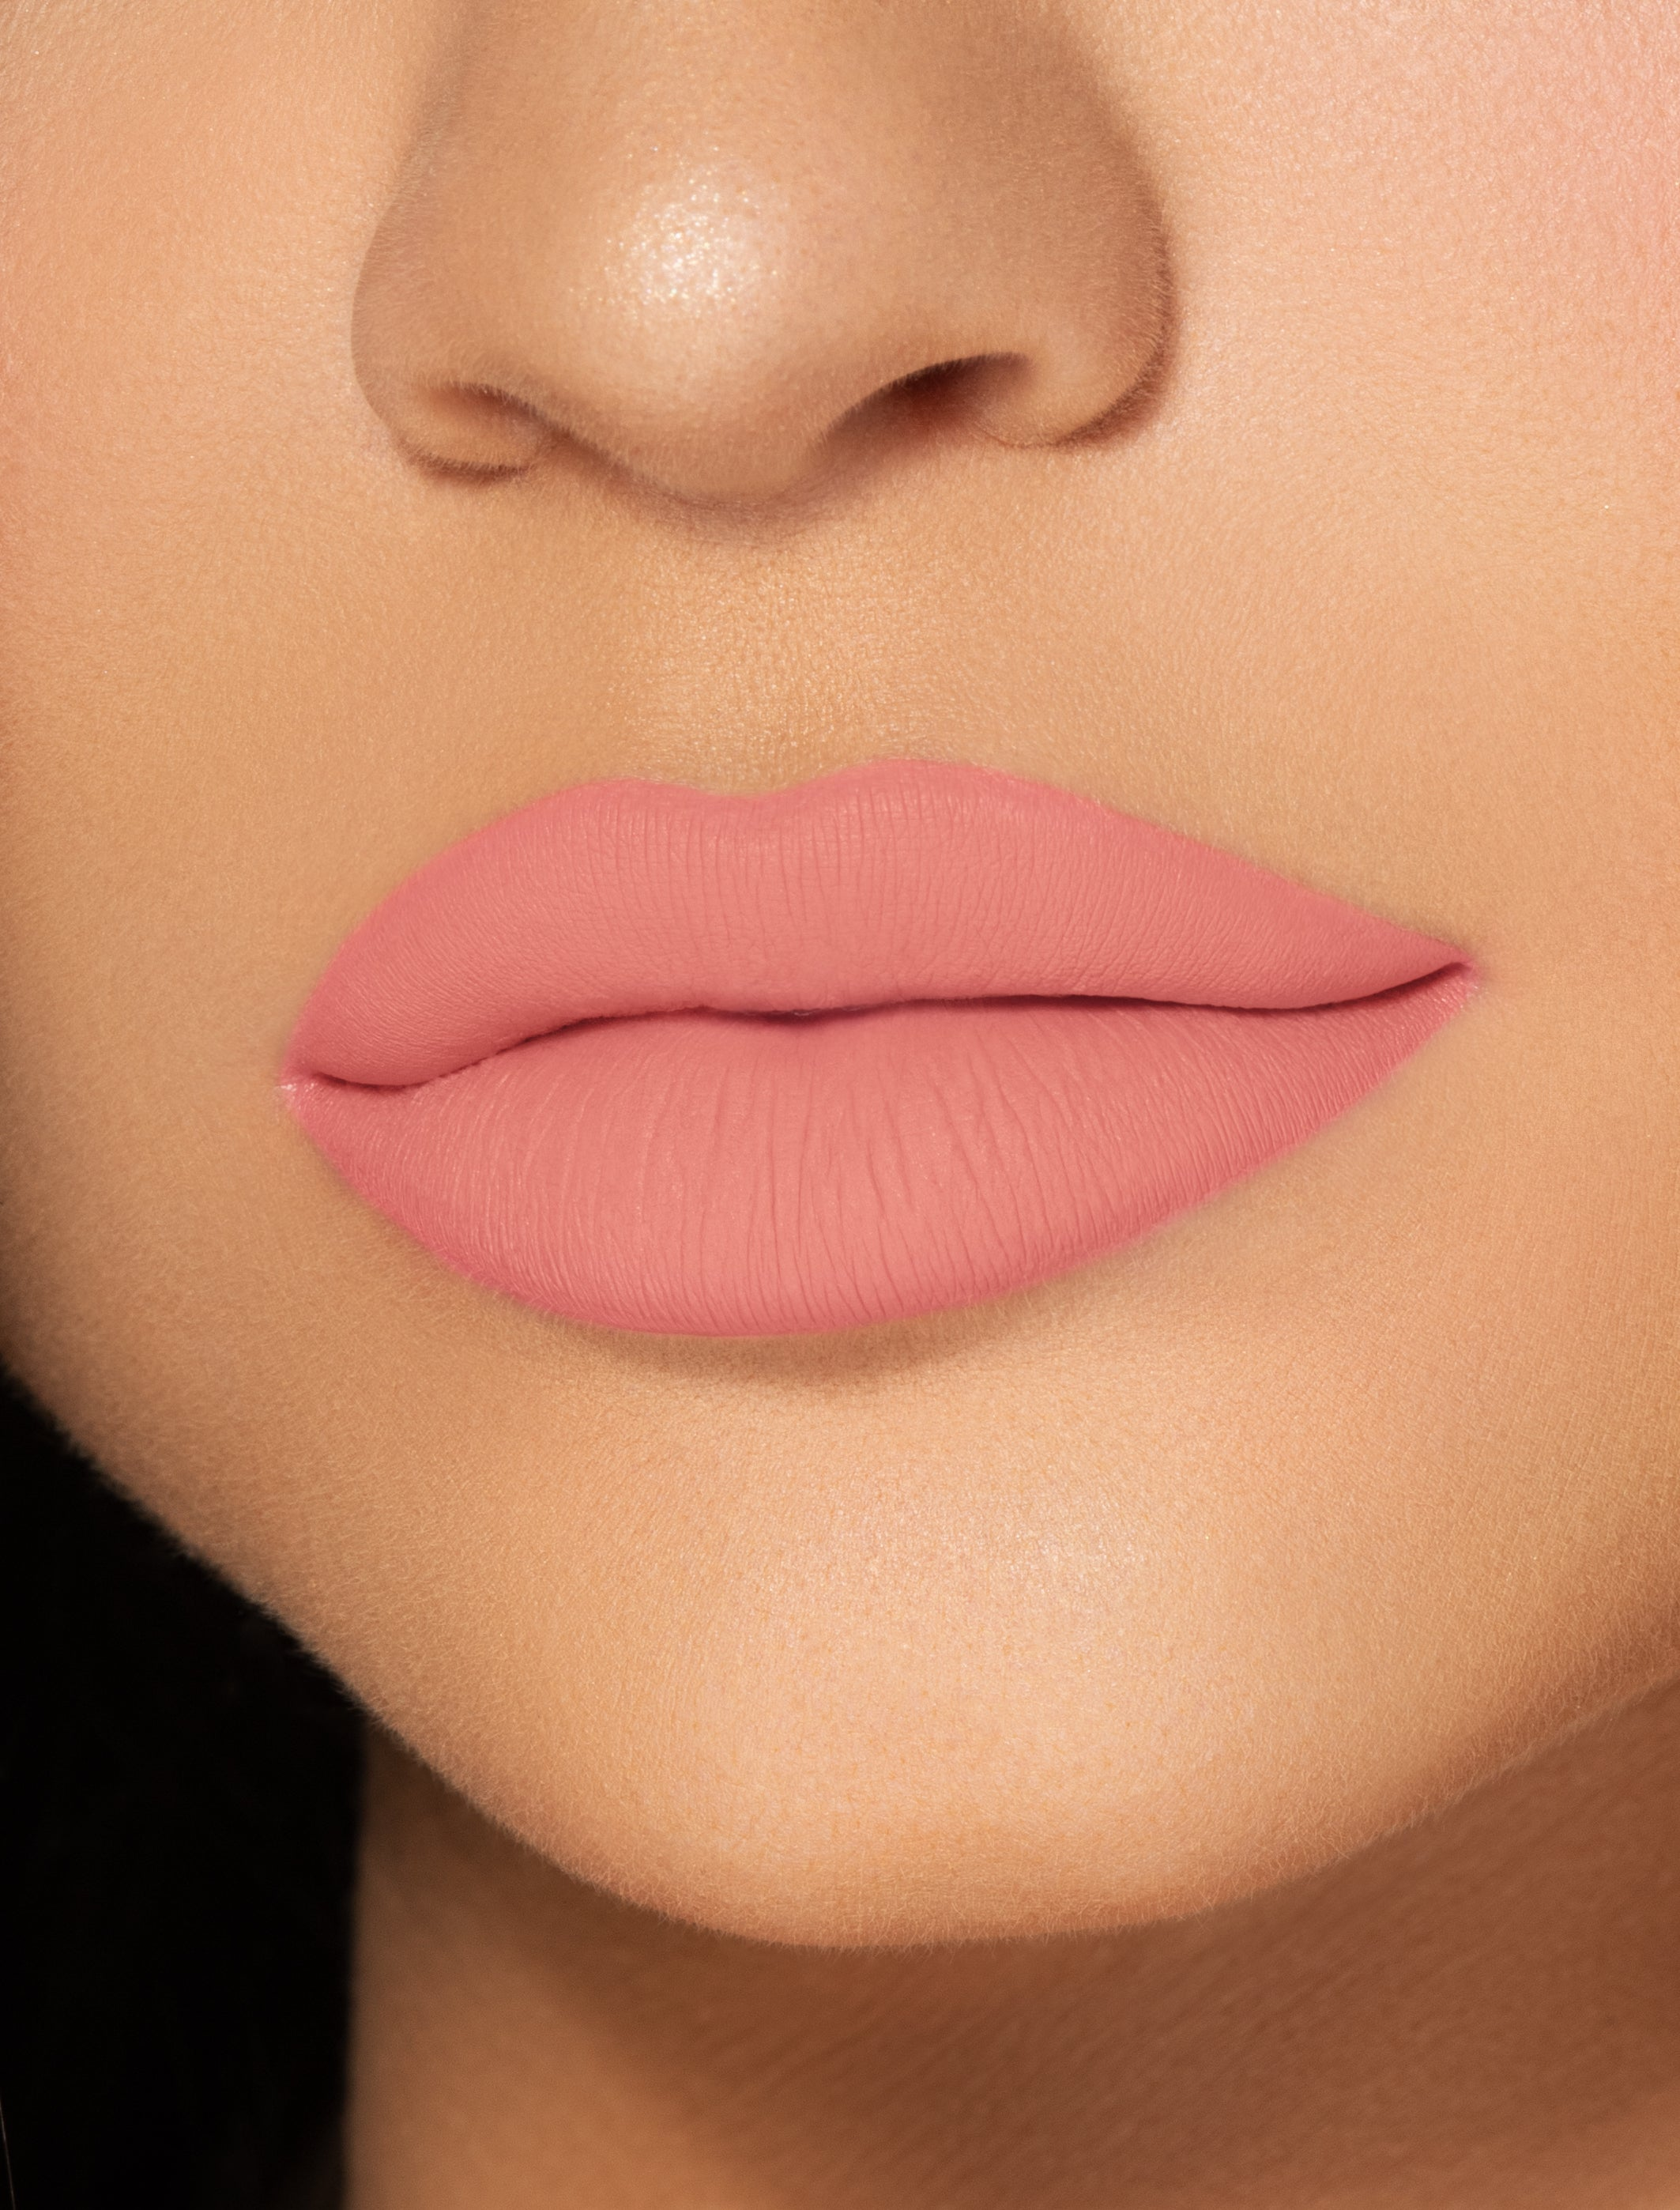 Apricot | Matte Liquid Lipstick - Kylie Cosmetics by Kylie Jenner